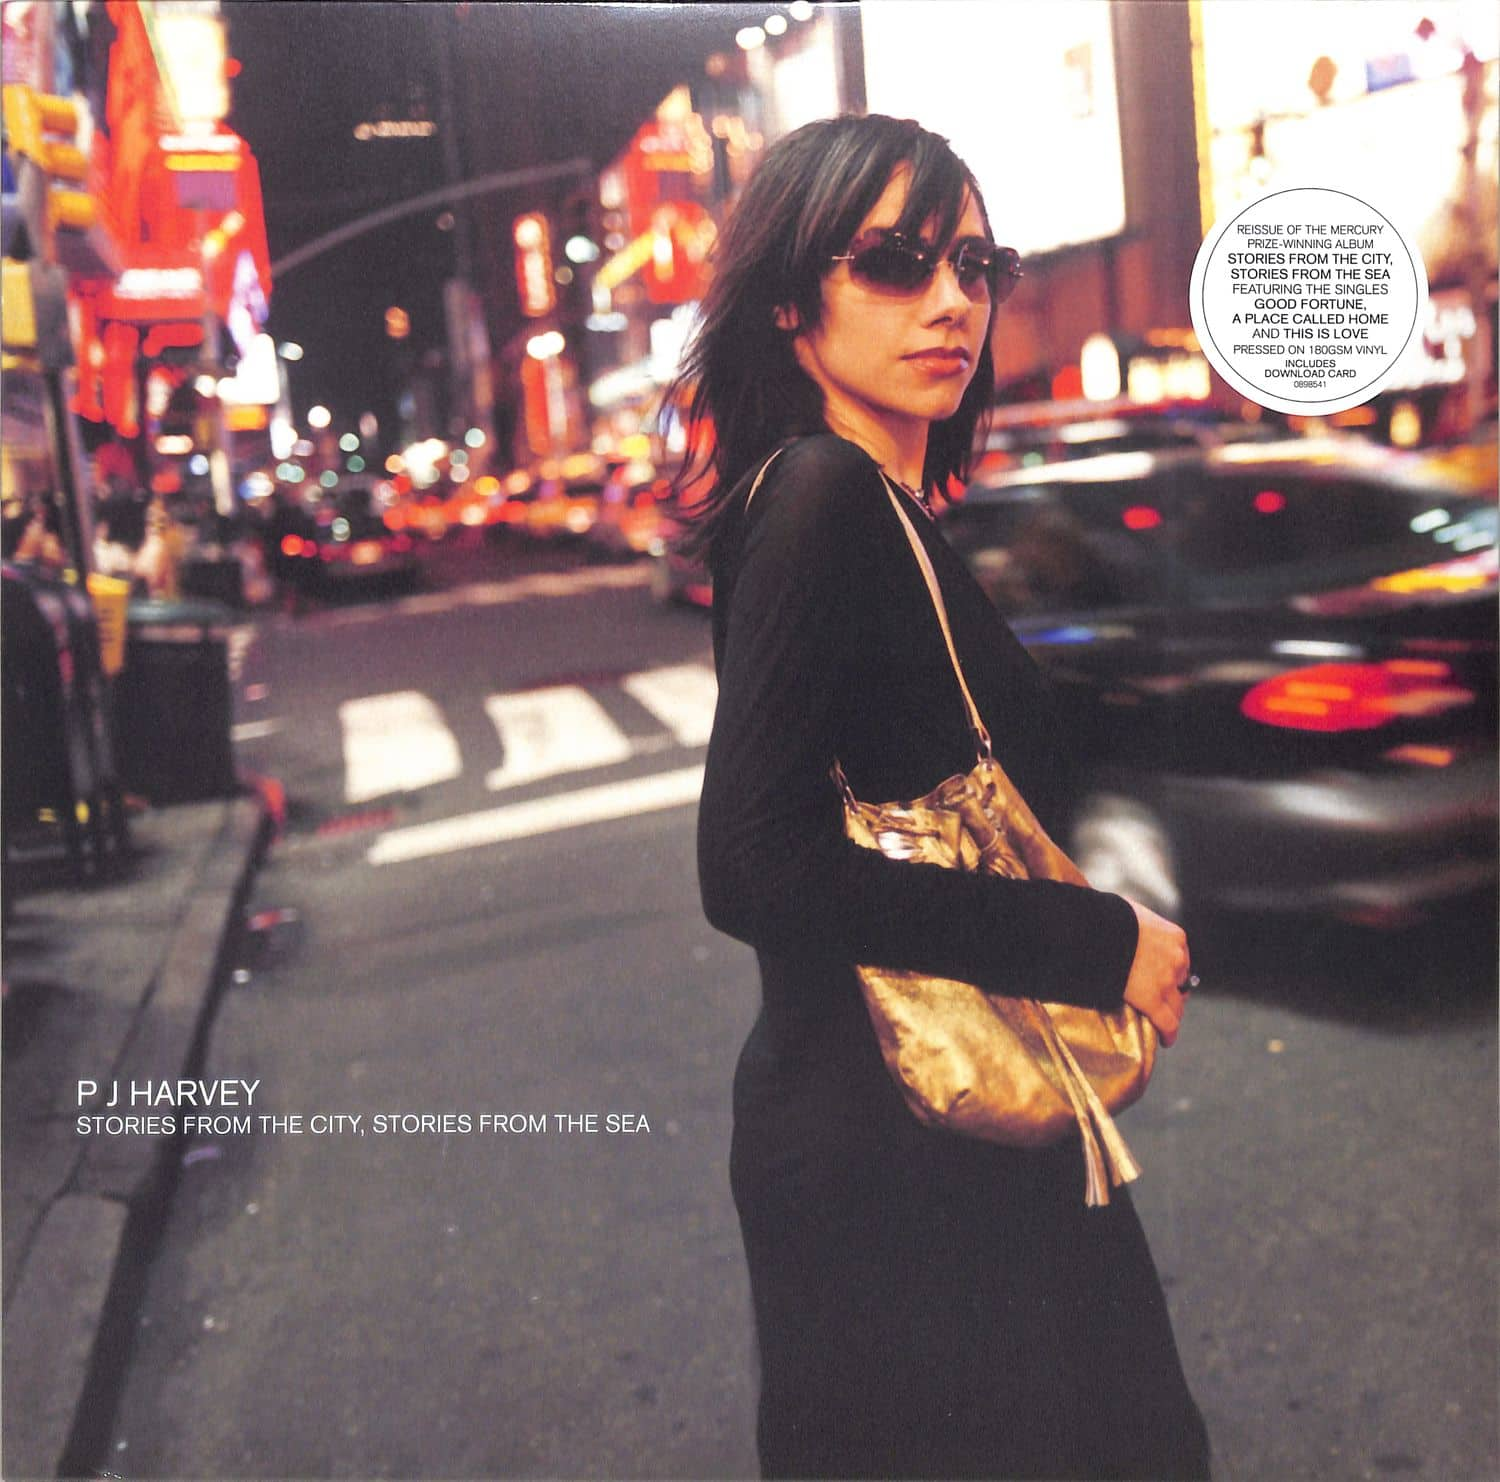 PJ Harvey - STORIES FROM THE CITY,STORIES FROM THE SEA